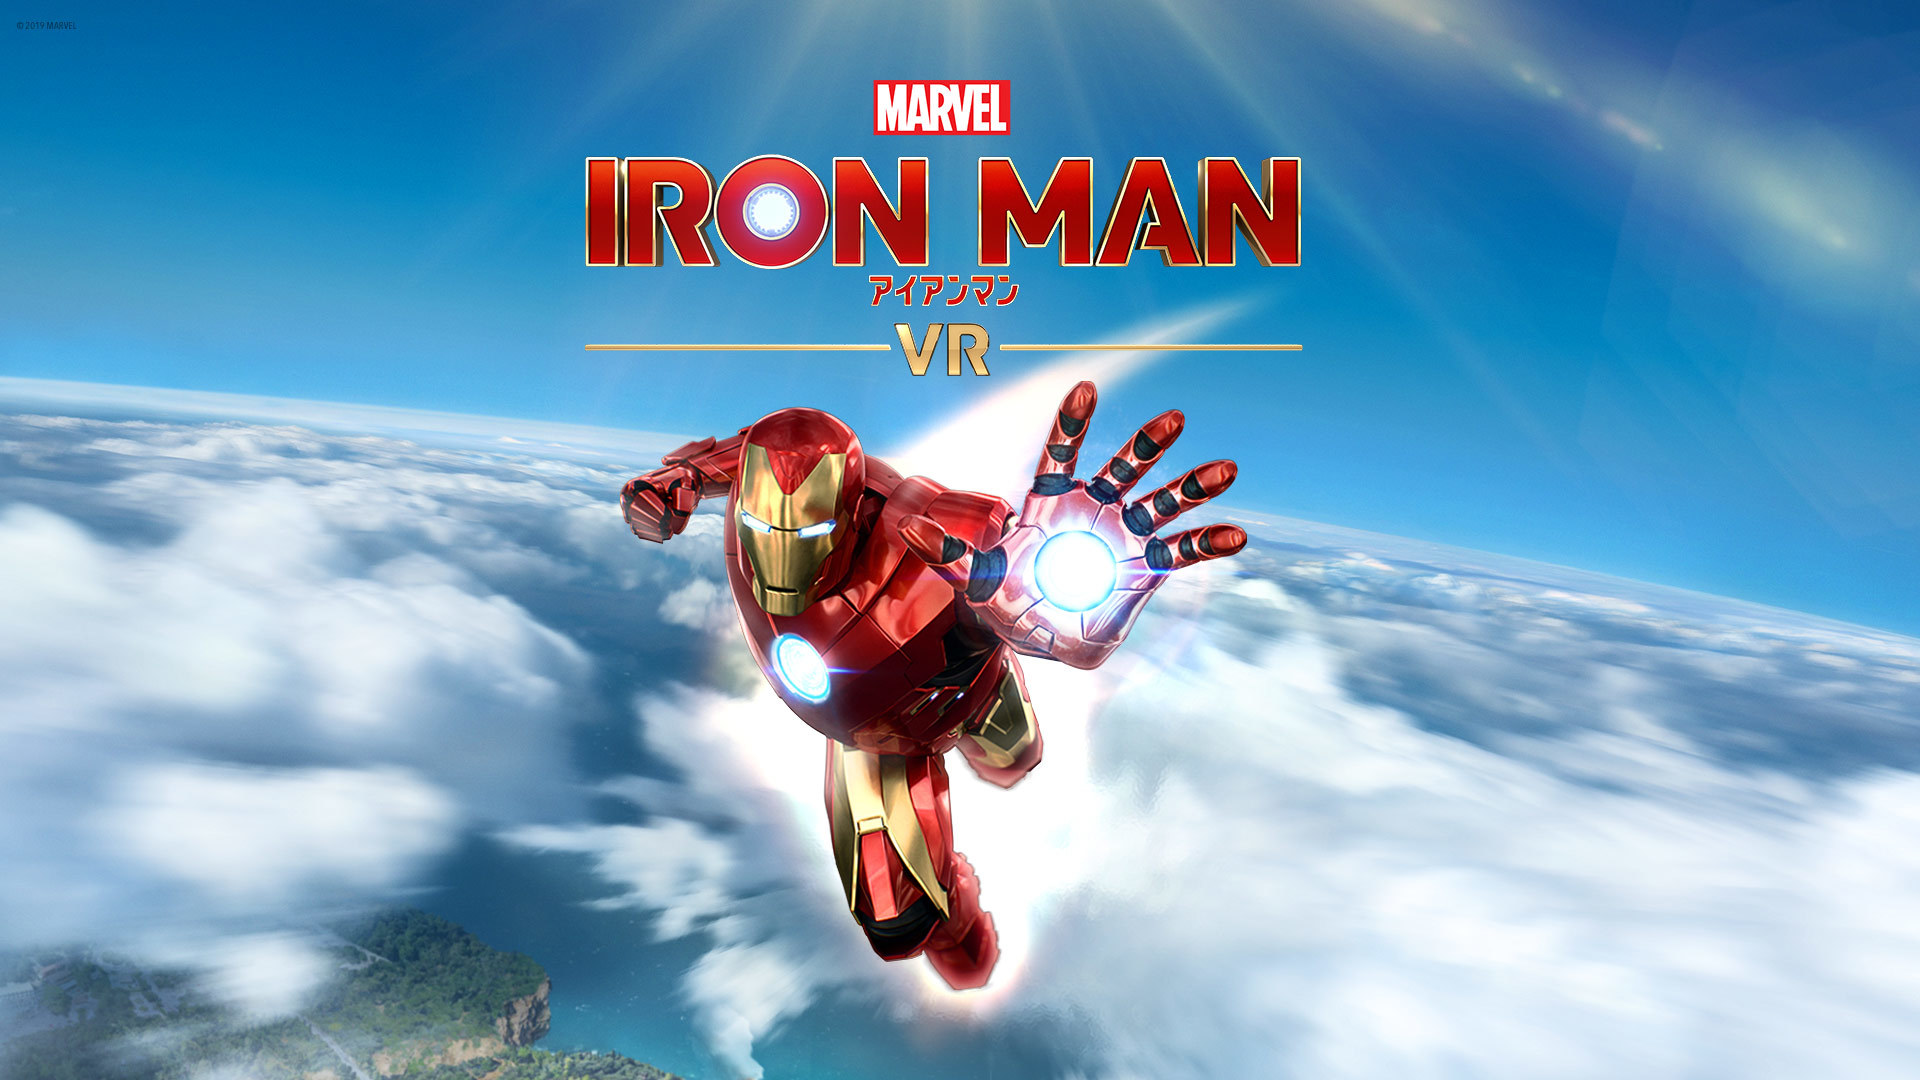 『マーベルアイアンマン VR』メインビジュアル (c) 2019 MARVEL (c)2019 Sony Interactive Entertainment LLC. Developed by Camouflaj, LLC.